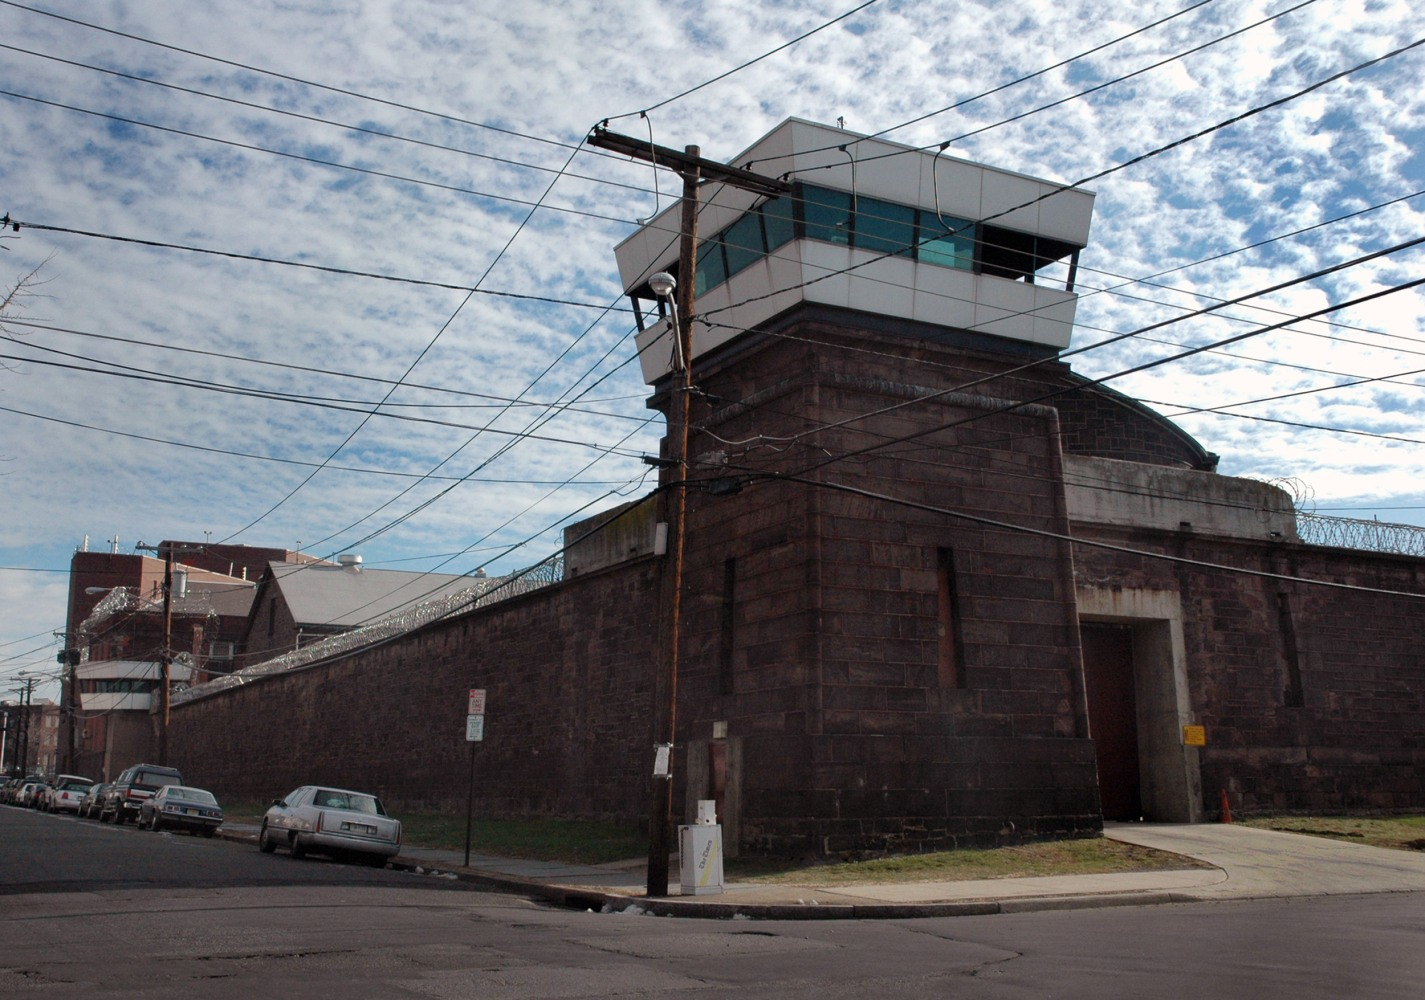 Ban on mass incarceration book lifted at 2 jails